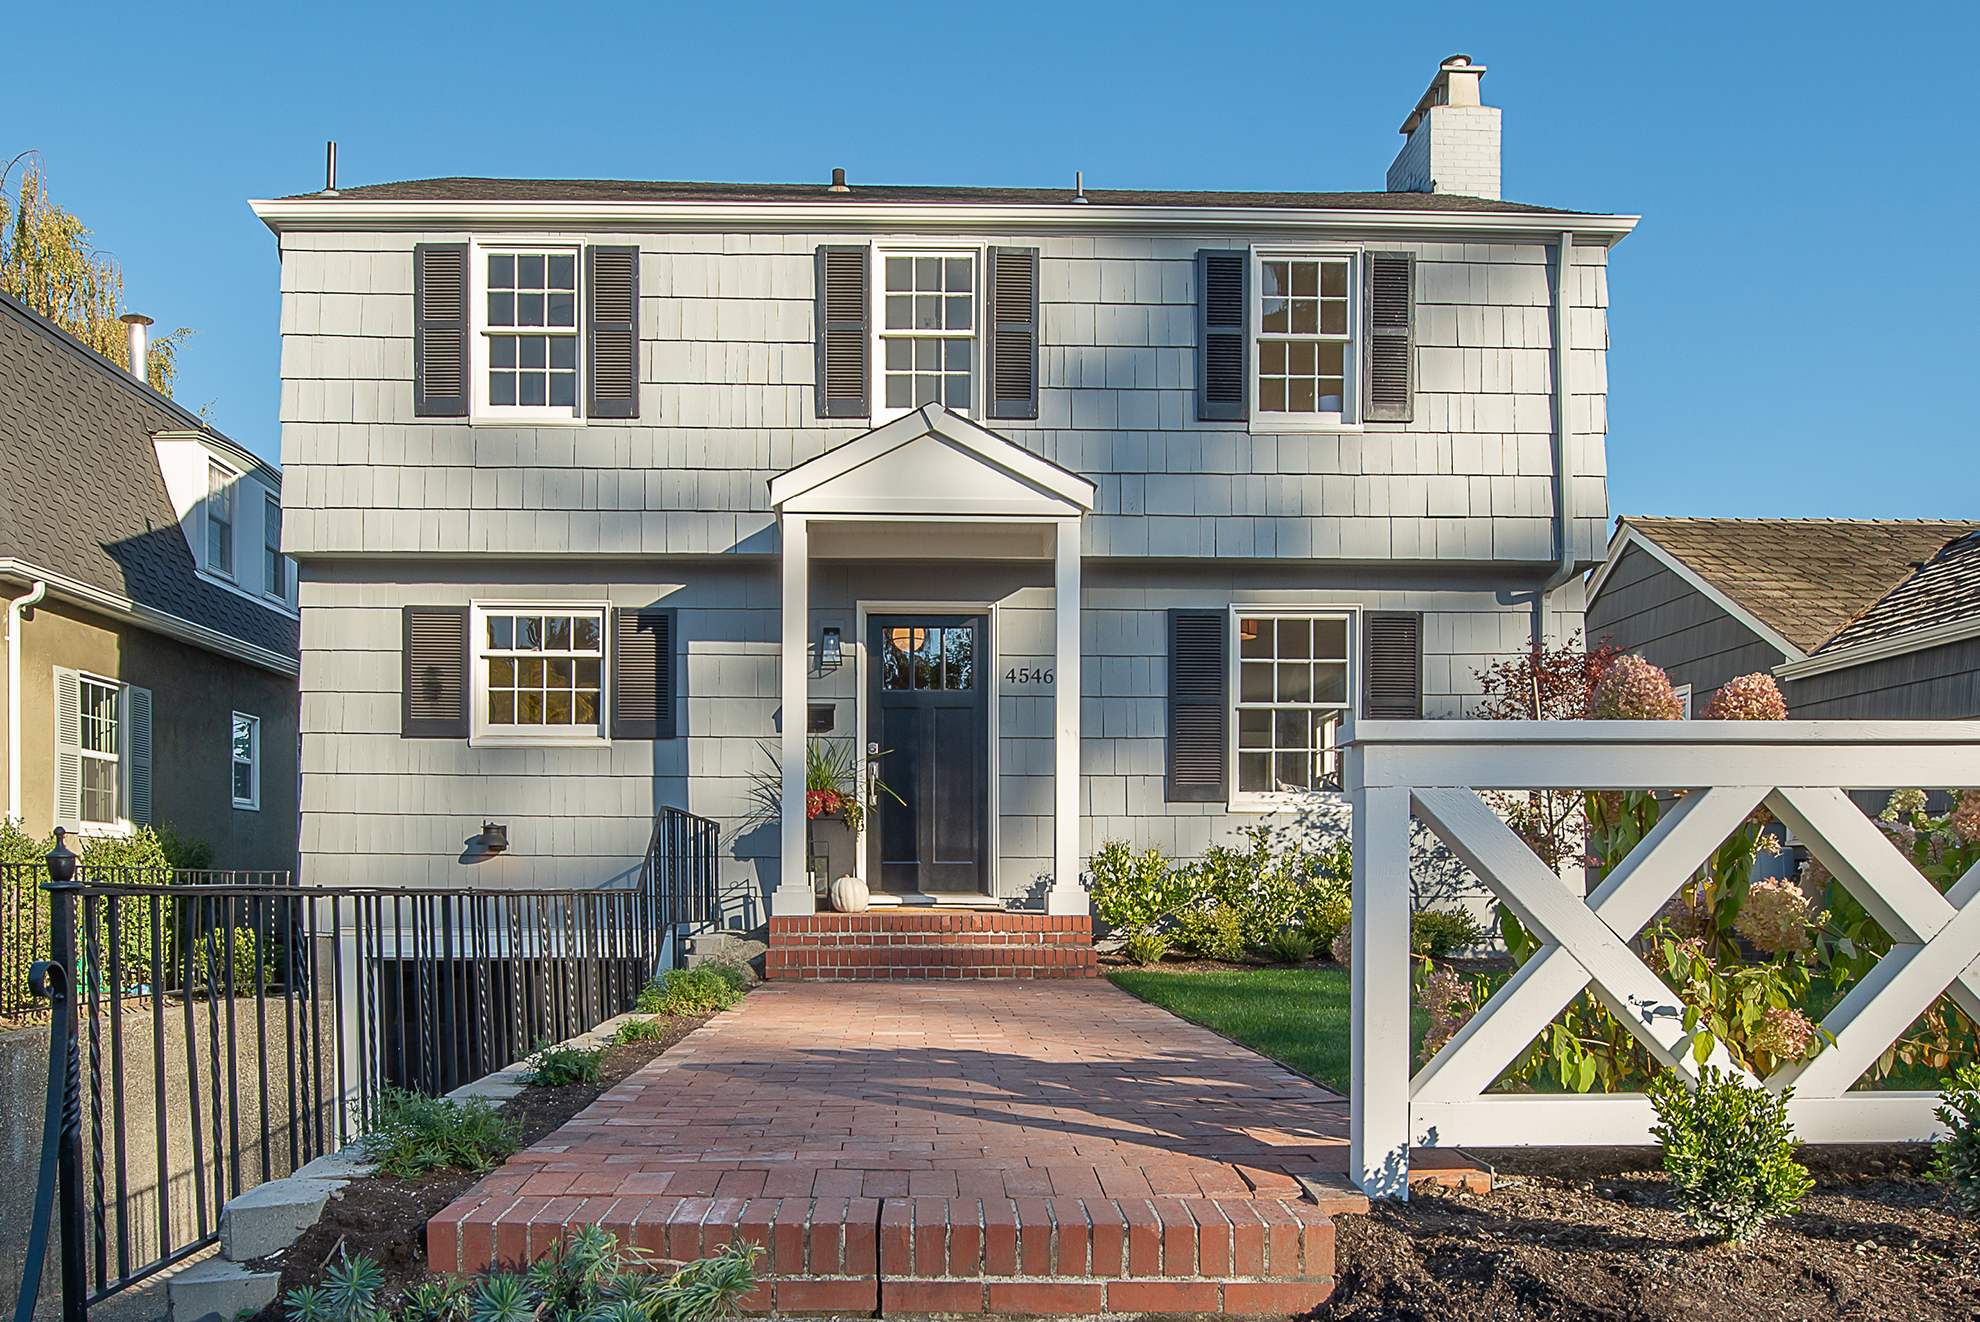 The new owners will truly have a one-of-a-kind Tudor with the addition of our custom-made fence.